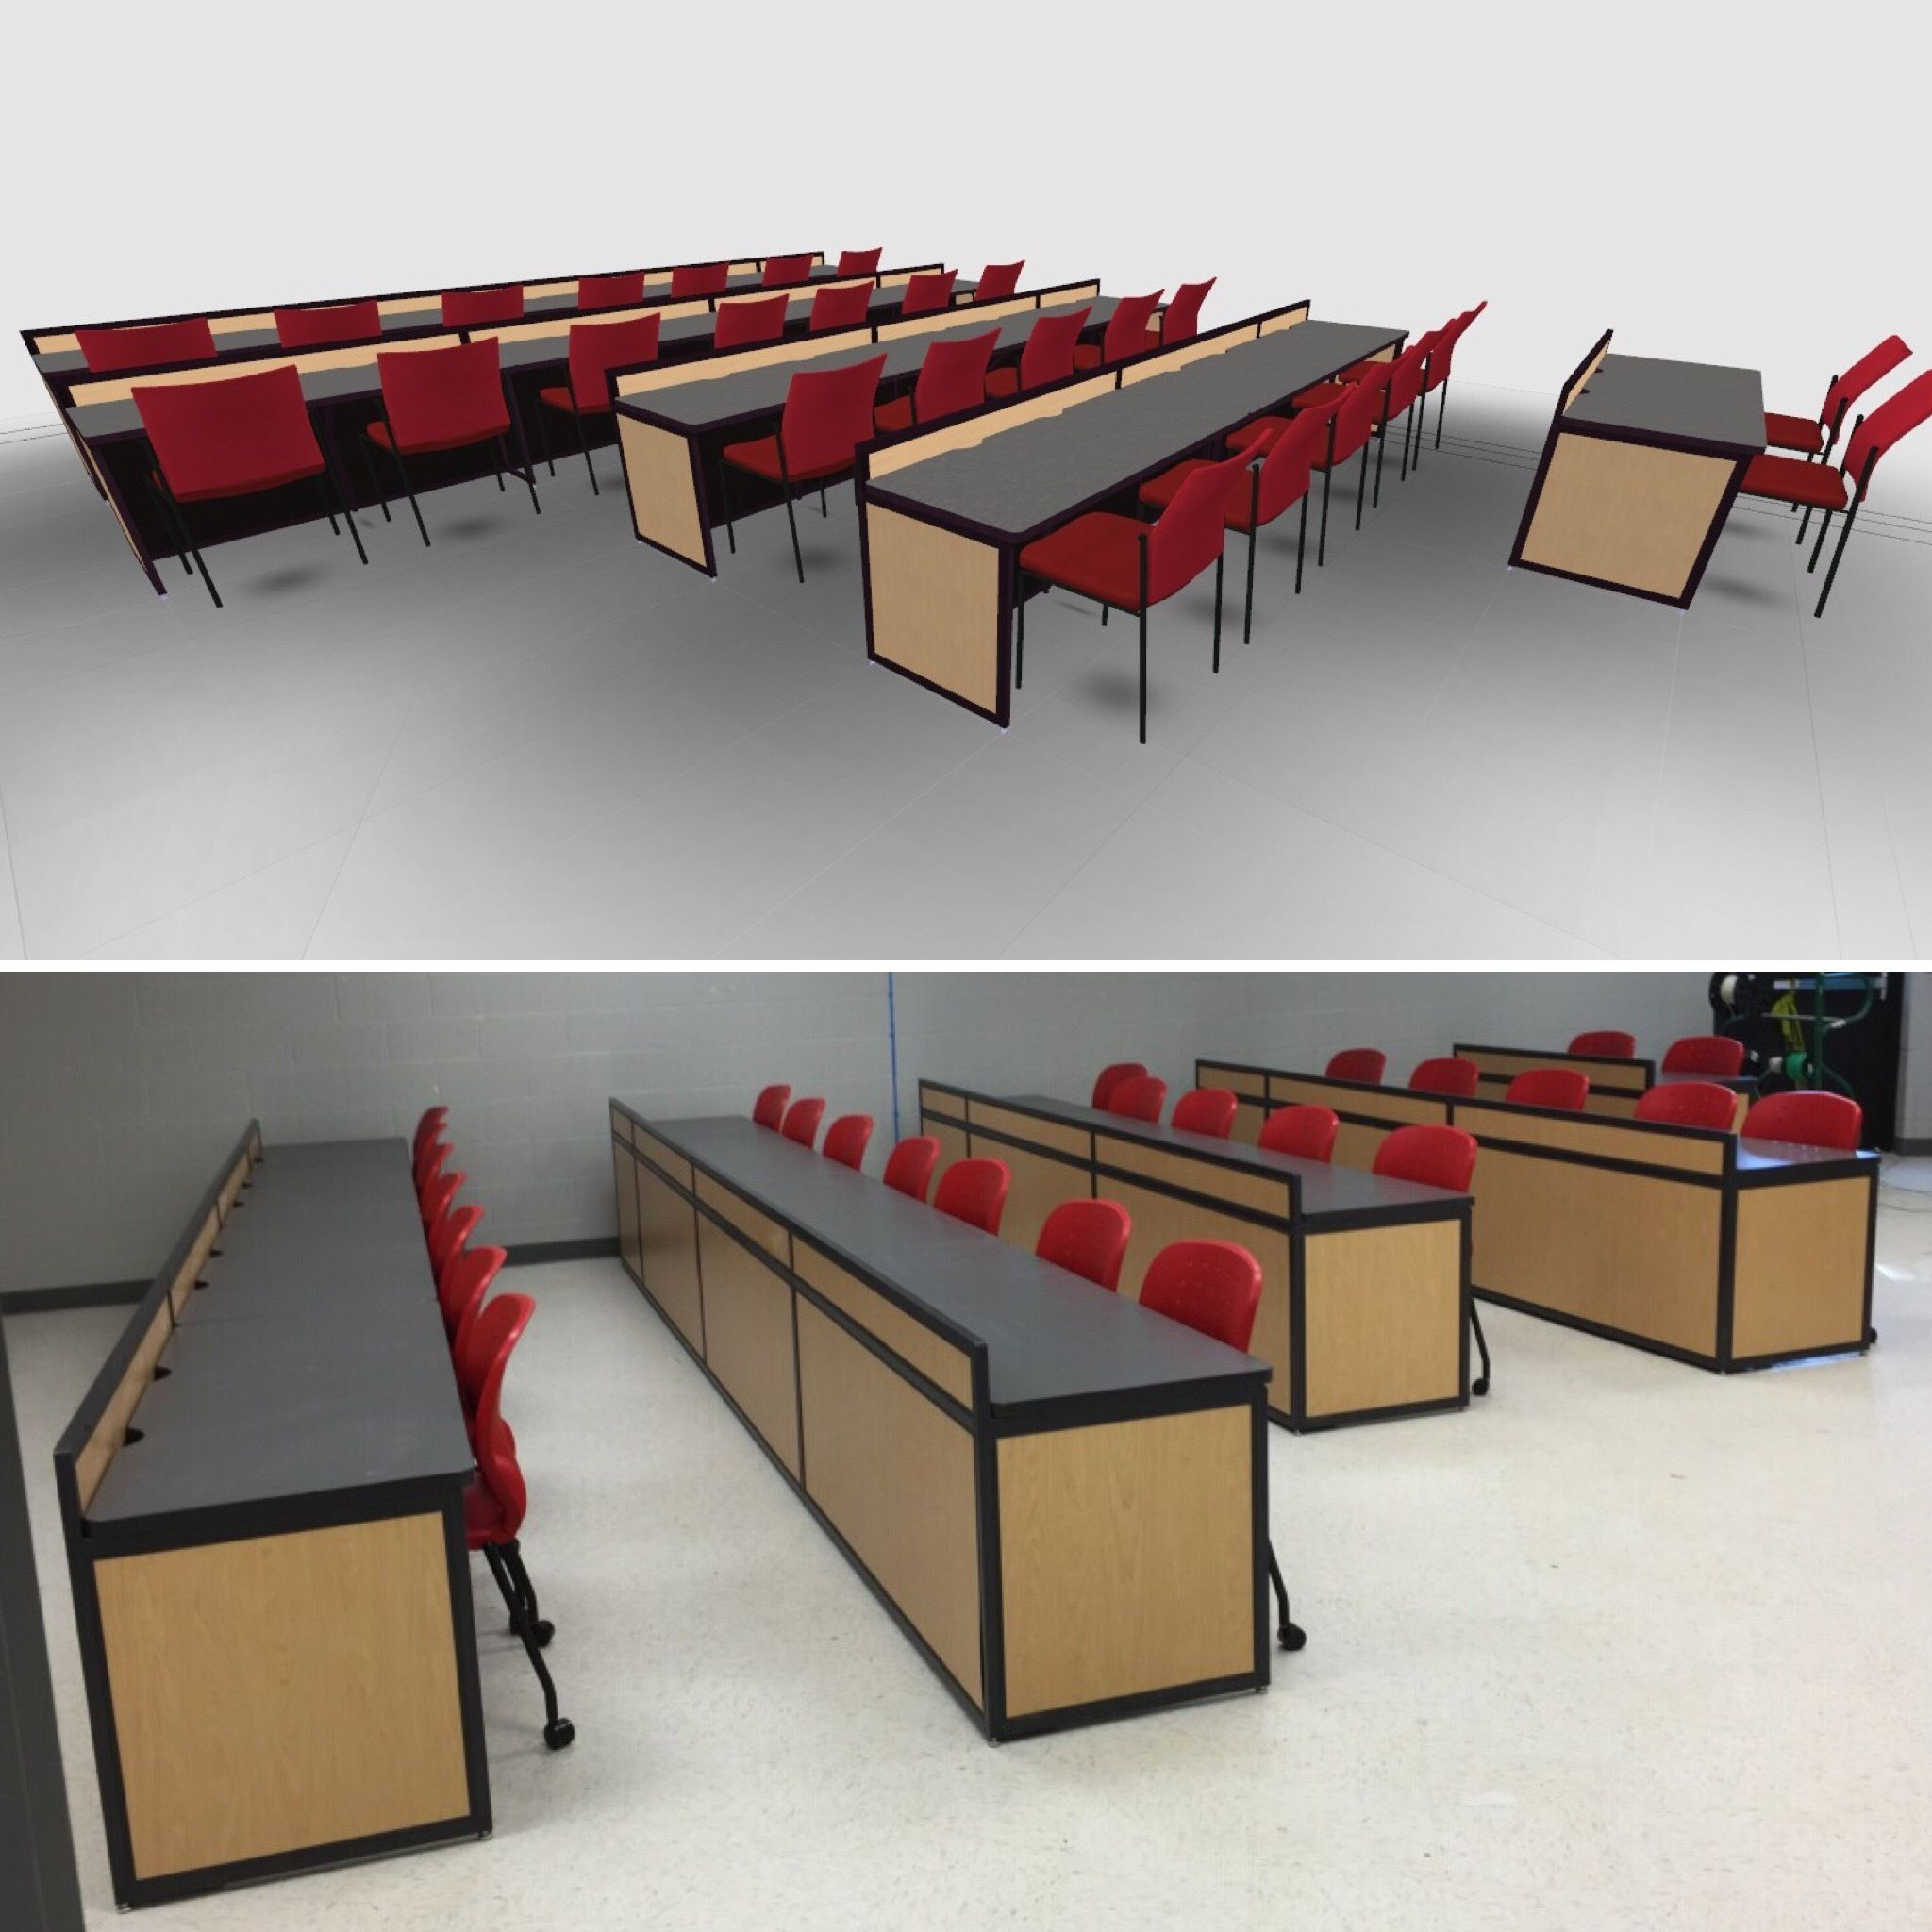 puter Lab Furniture Customized for Any Space by